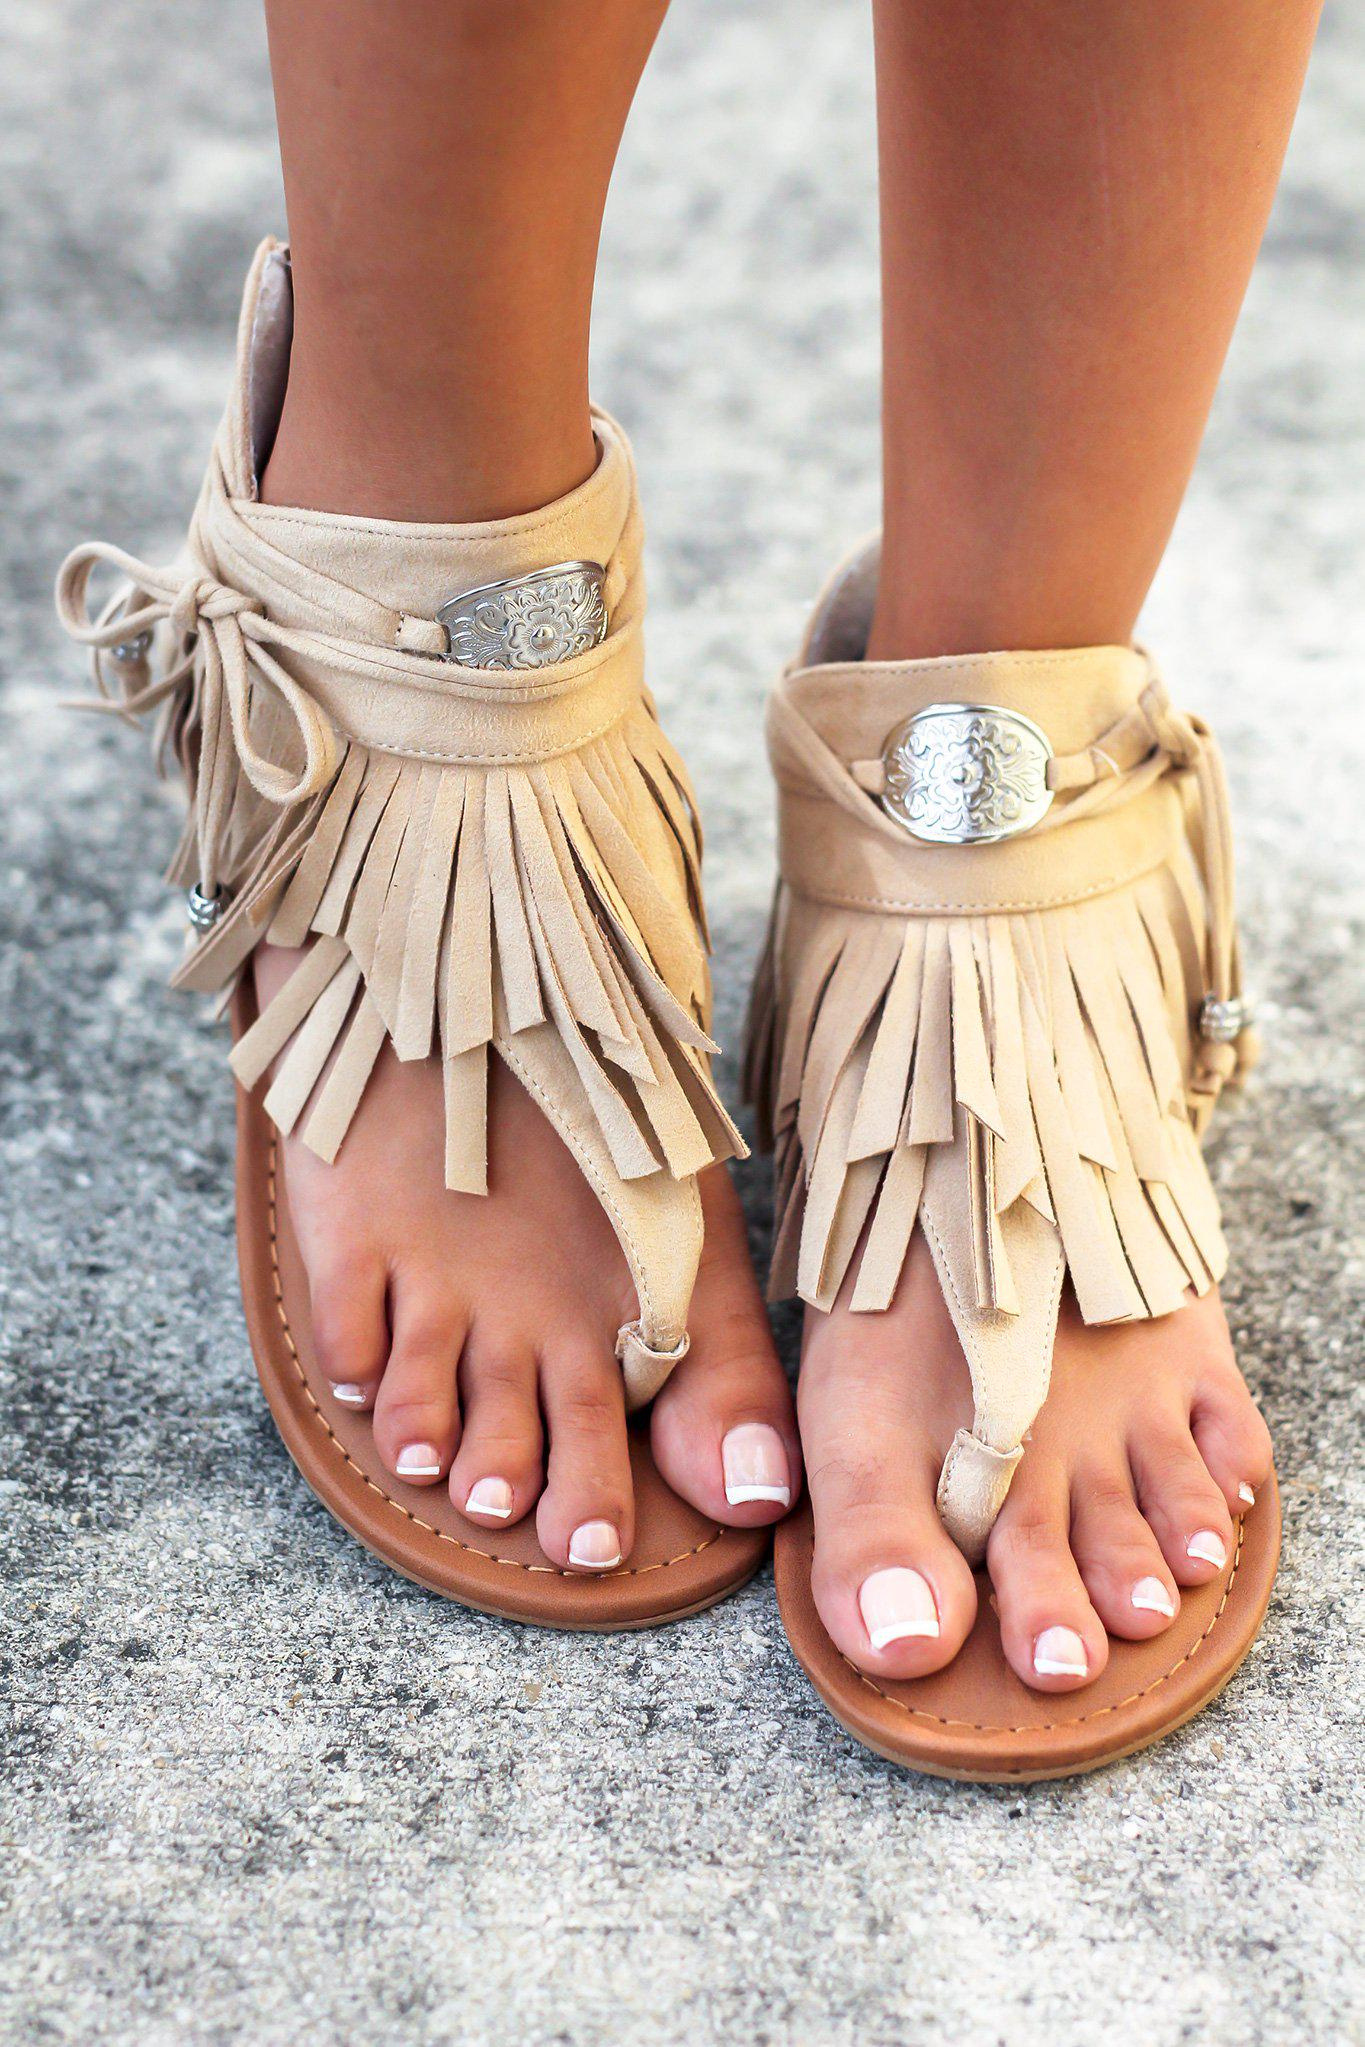 Chia Nude Sandals